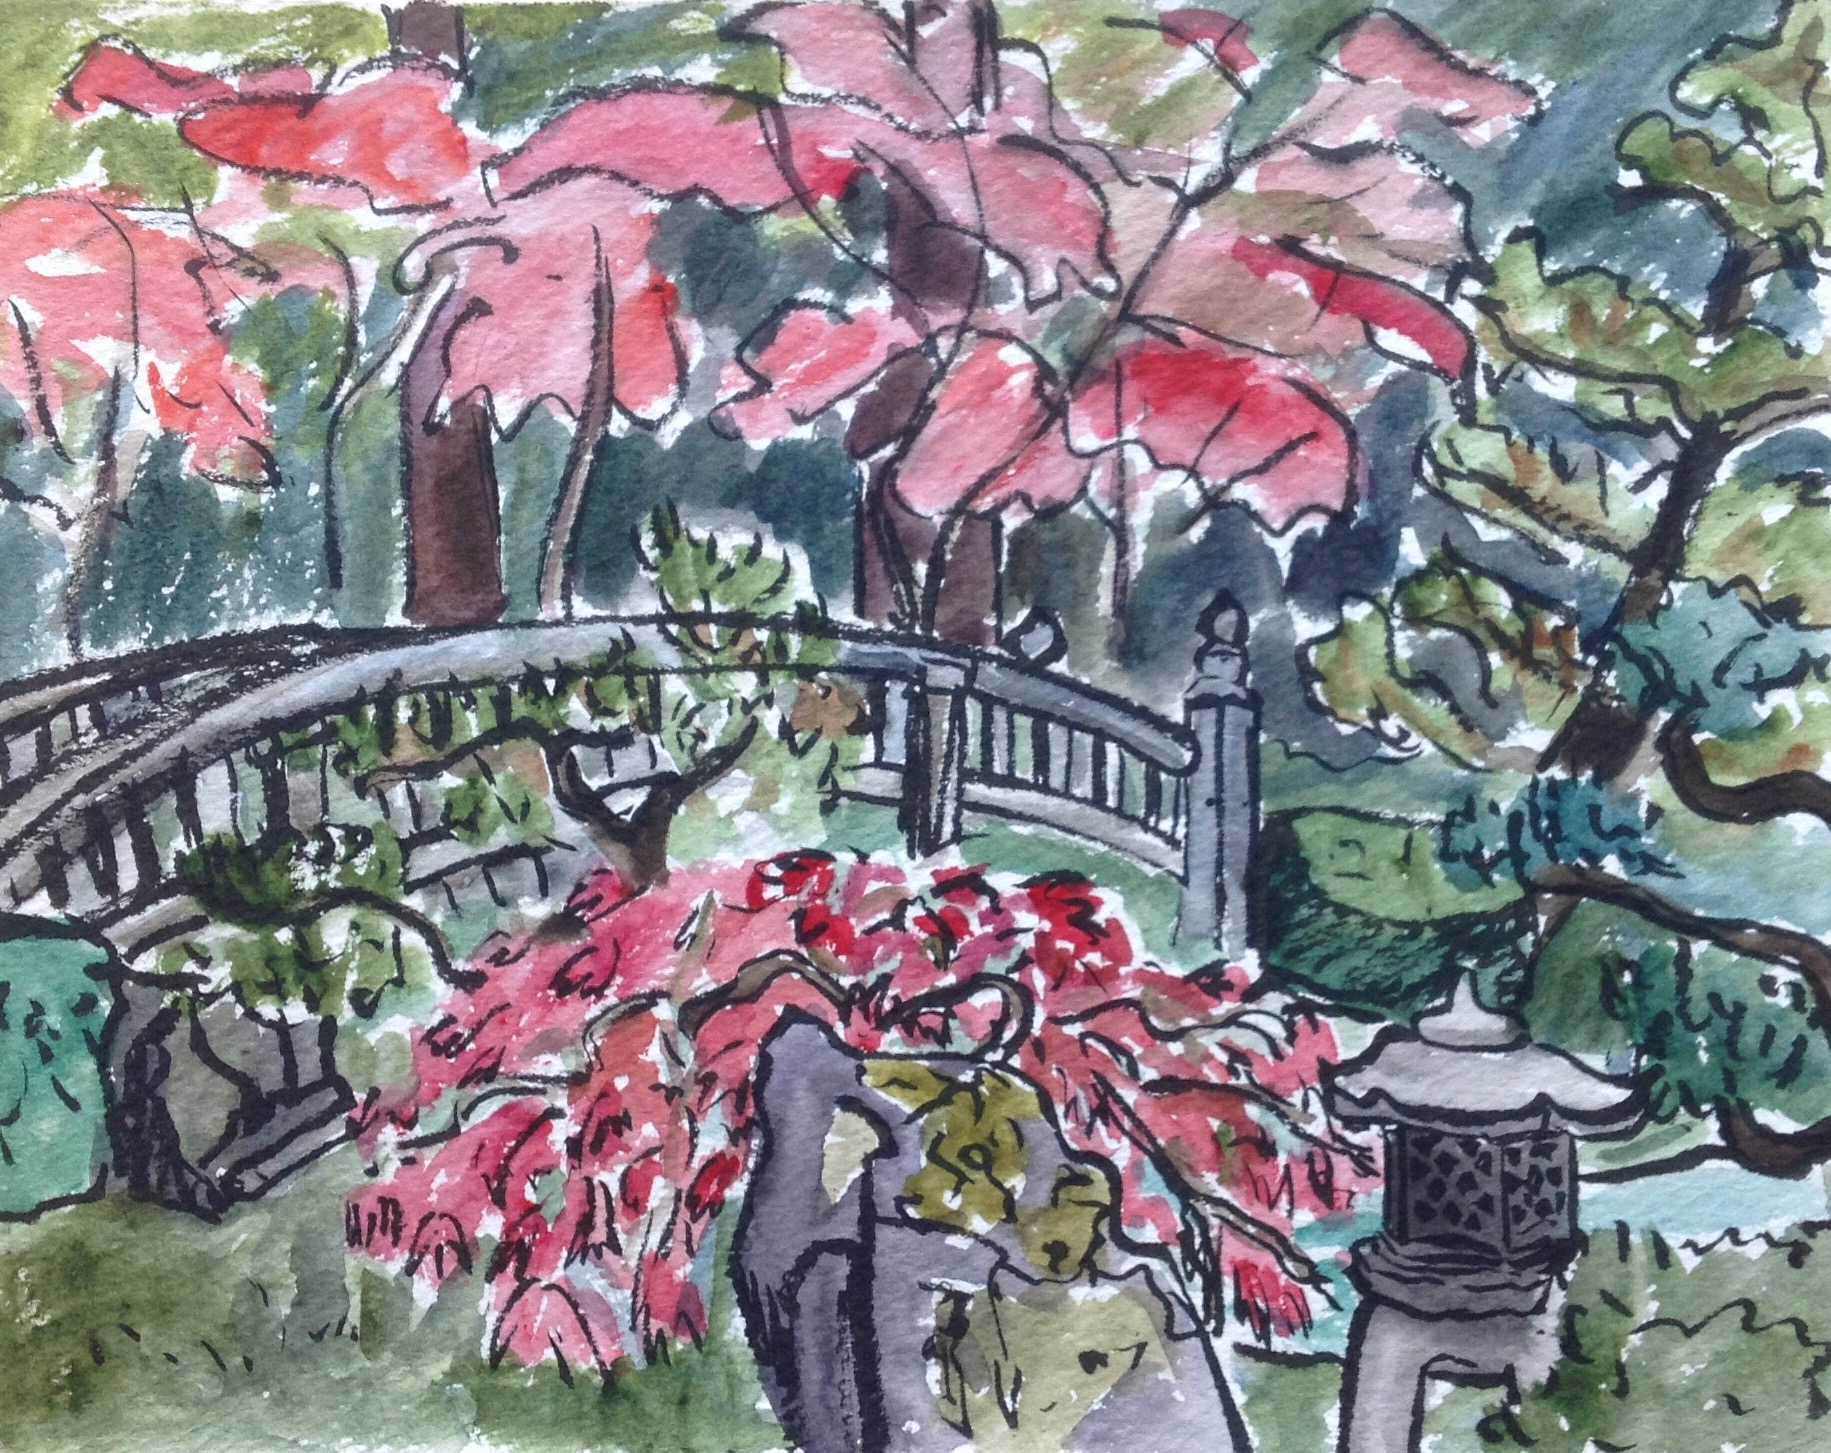 On the day that I sketched this, there were only a few visitors standing on the bridge, but when I returned to paint the stone lantern above, the bridge was crowded with people taking photos!